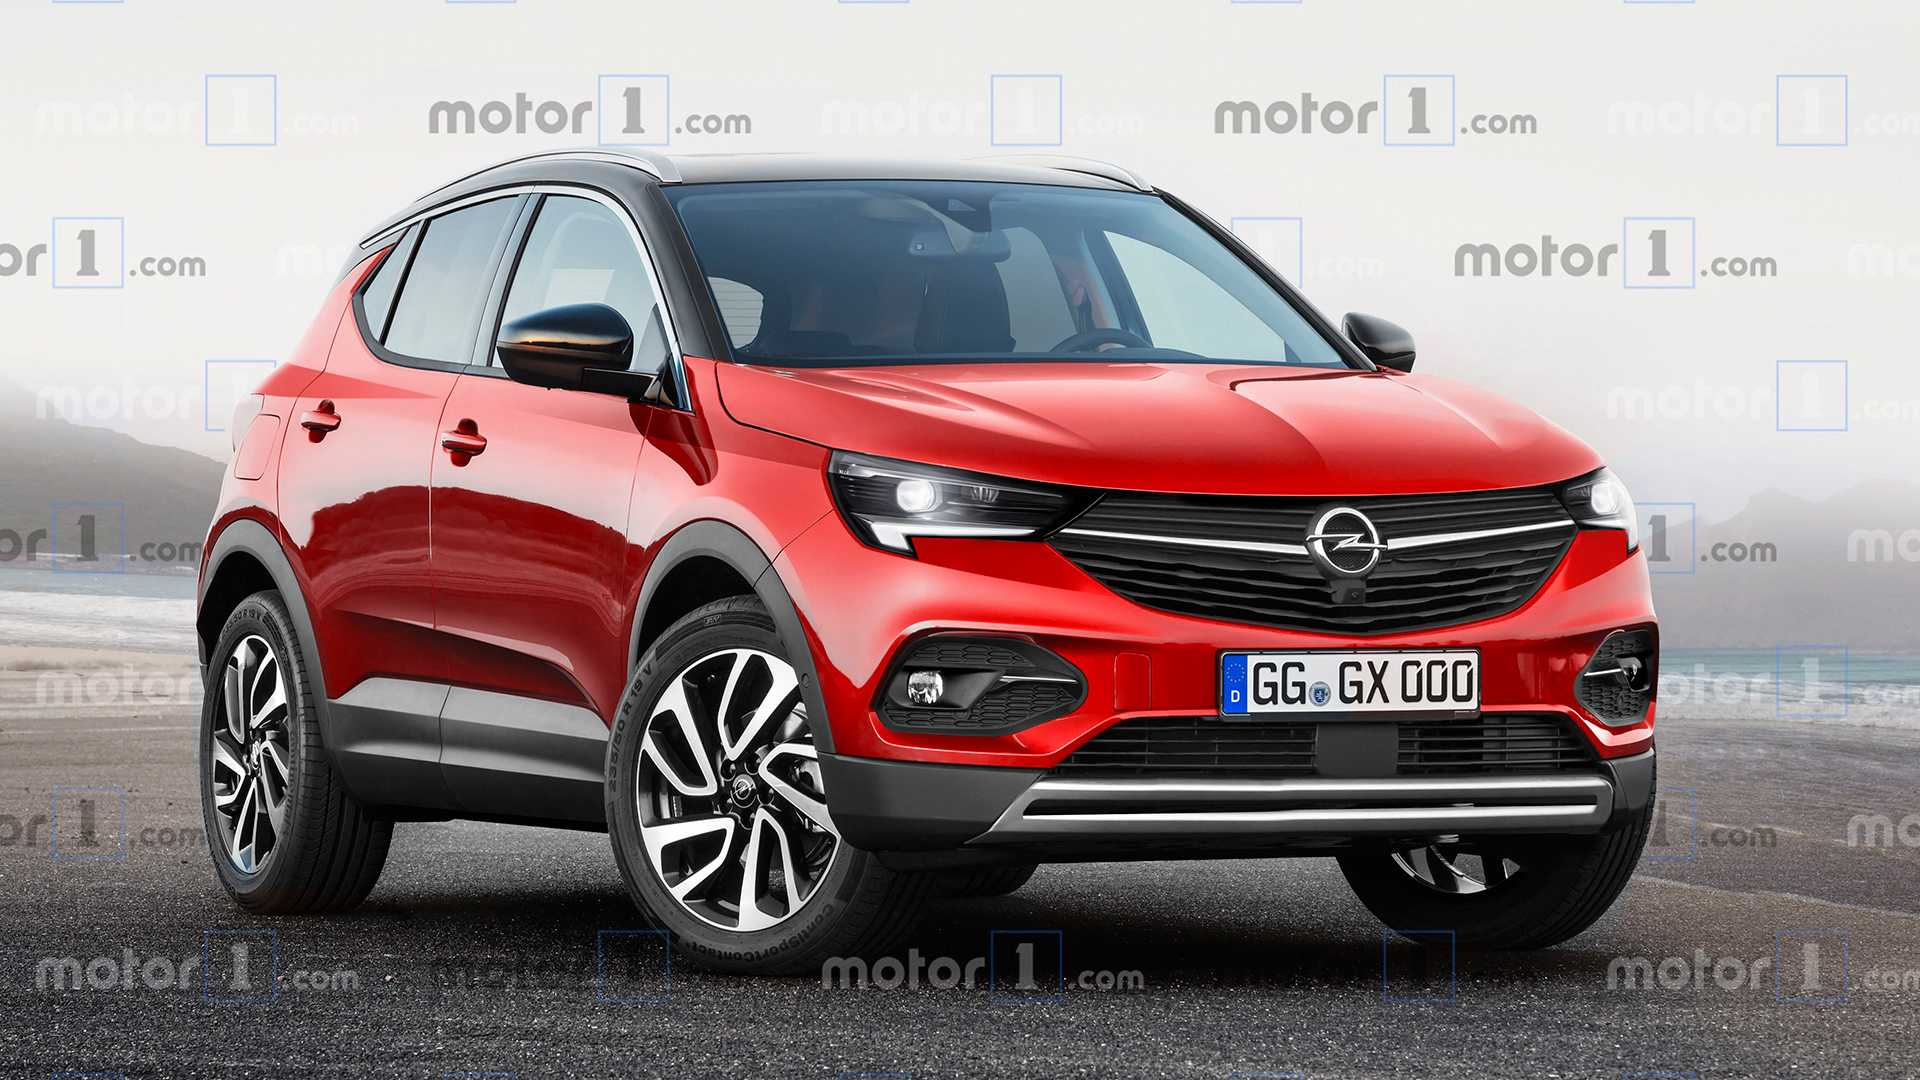 54 New Opel Grandland X Facelift 2020 Prices